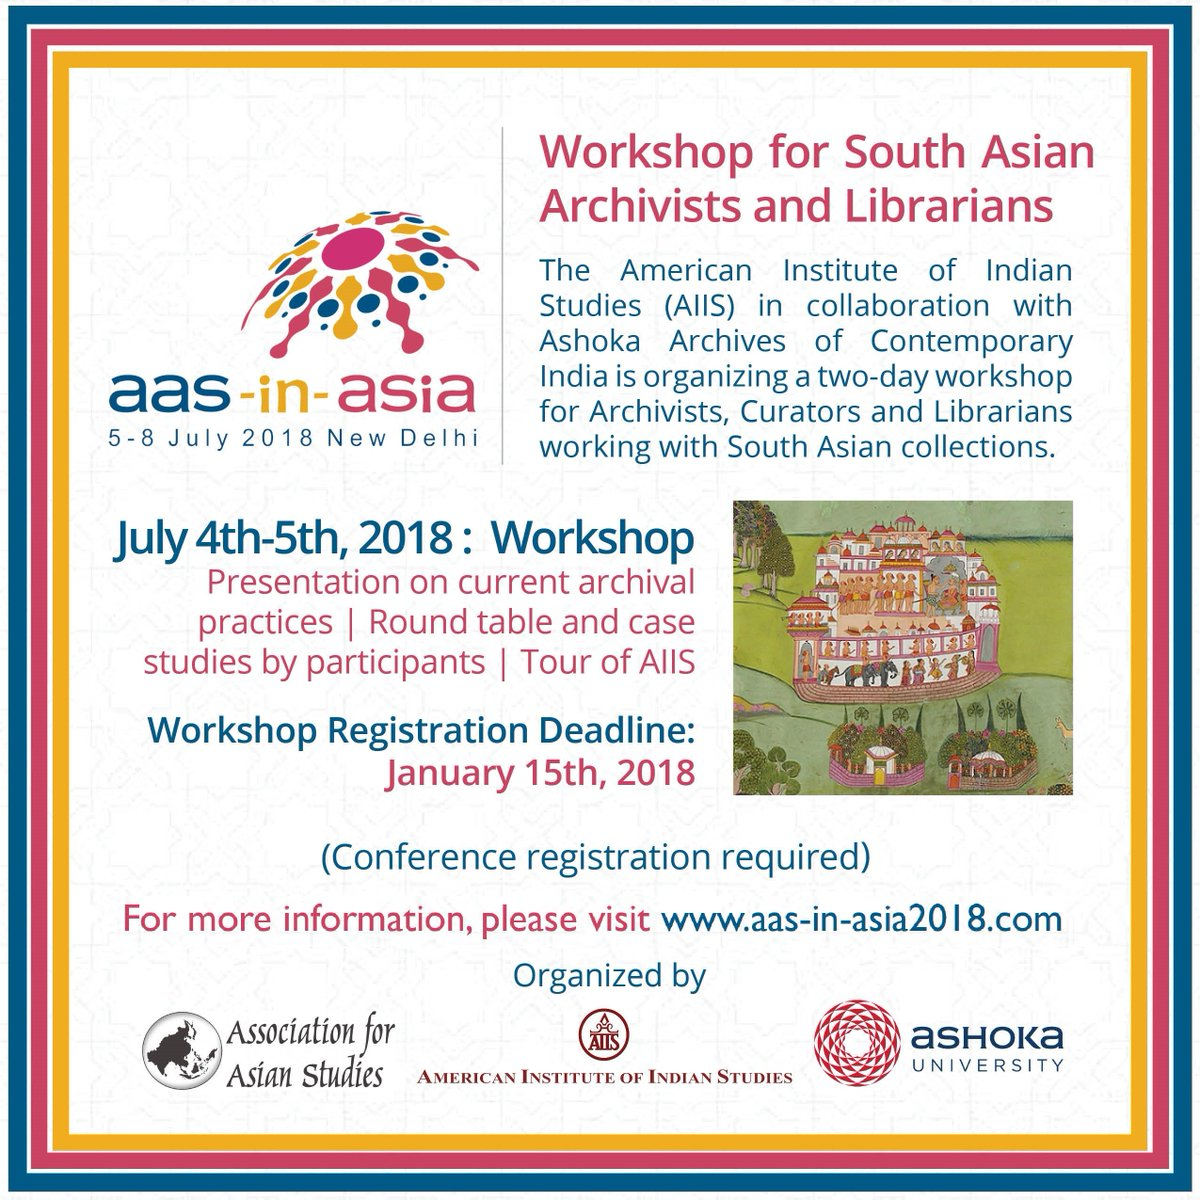 AAS-in-Asia 2018 on Twitter: